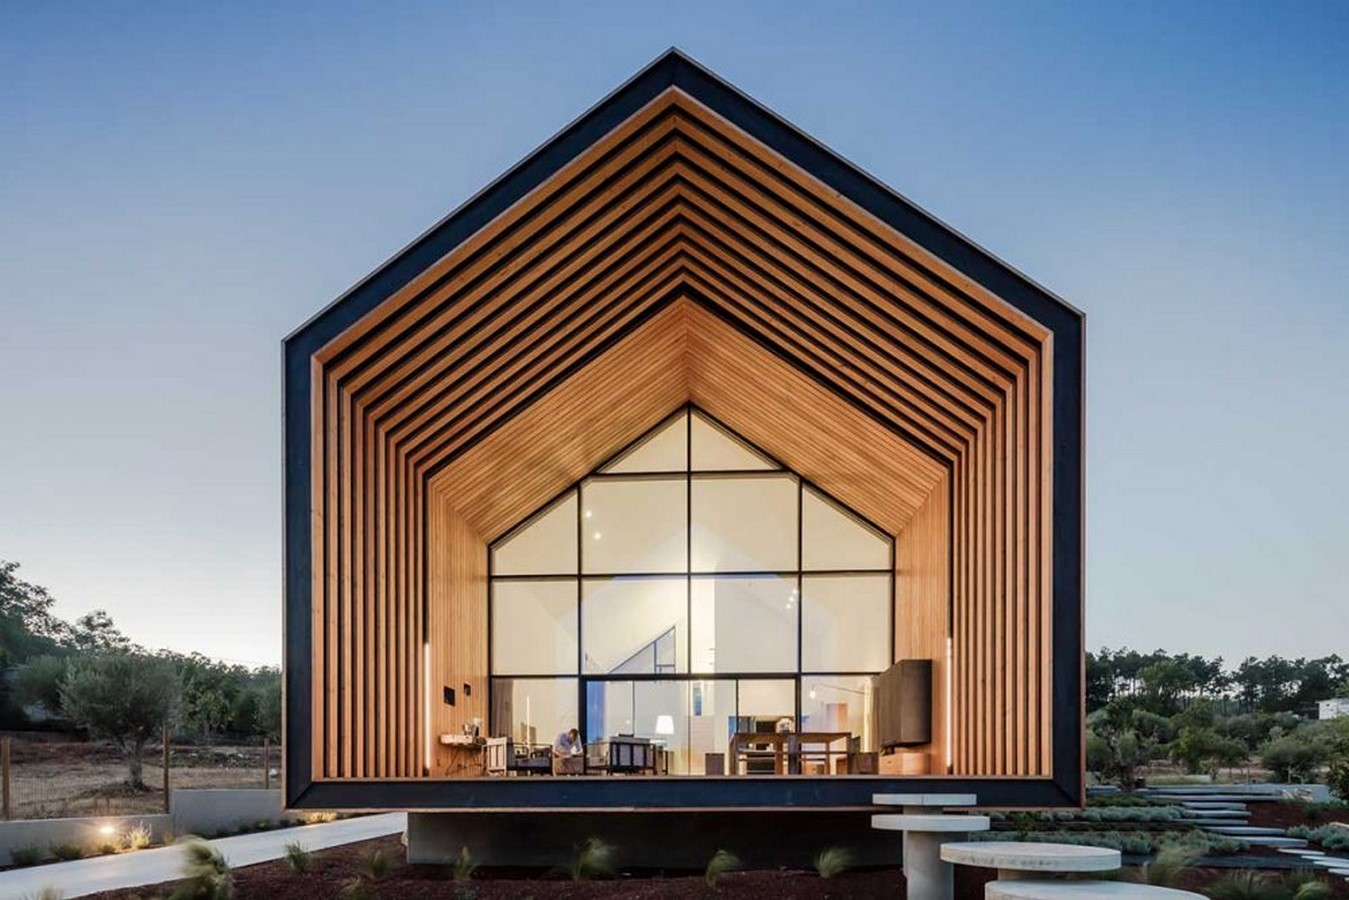 10 Emerging trends in sustainable architecture in 2020 - Sheet9